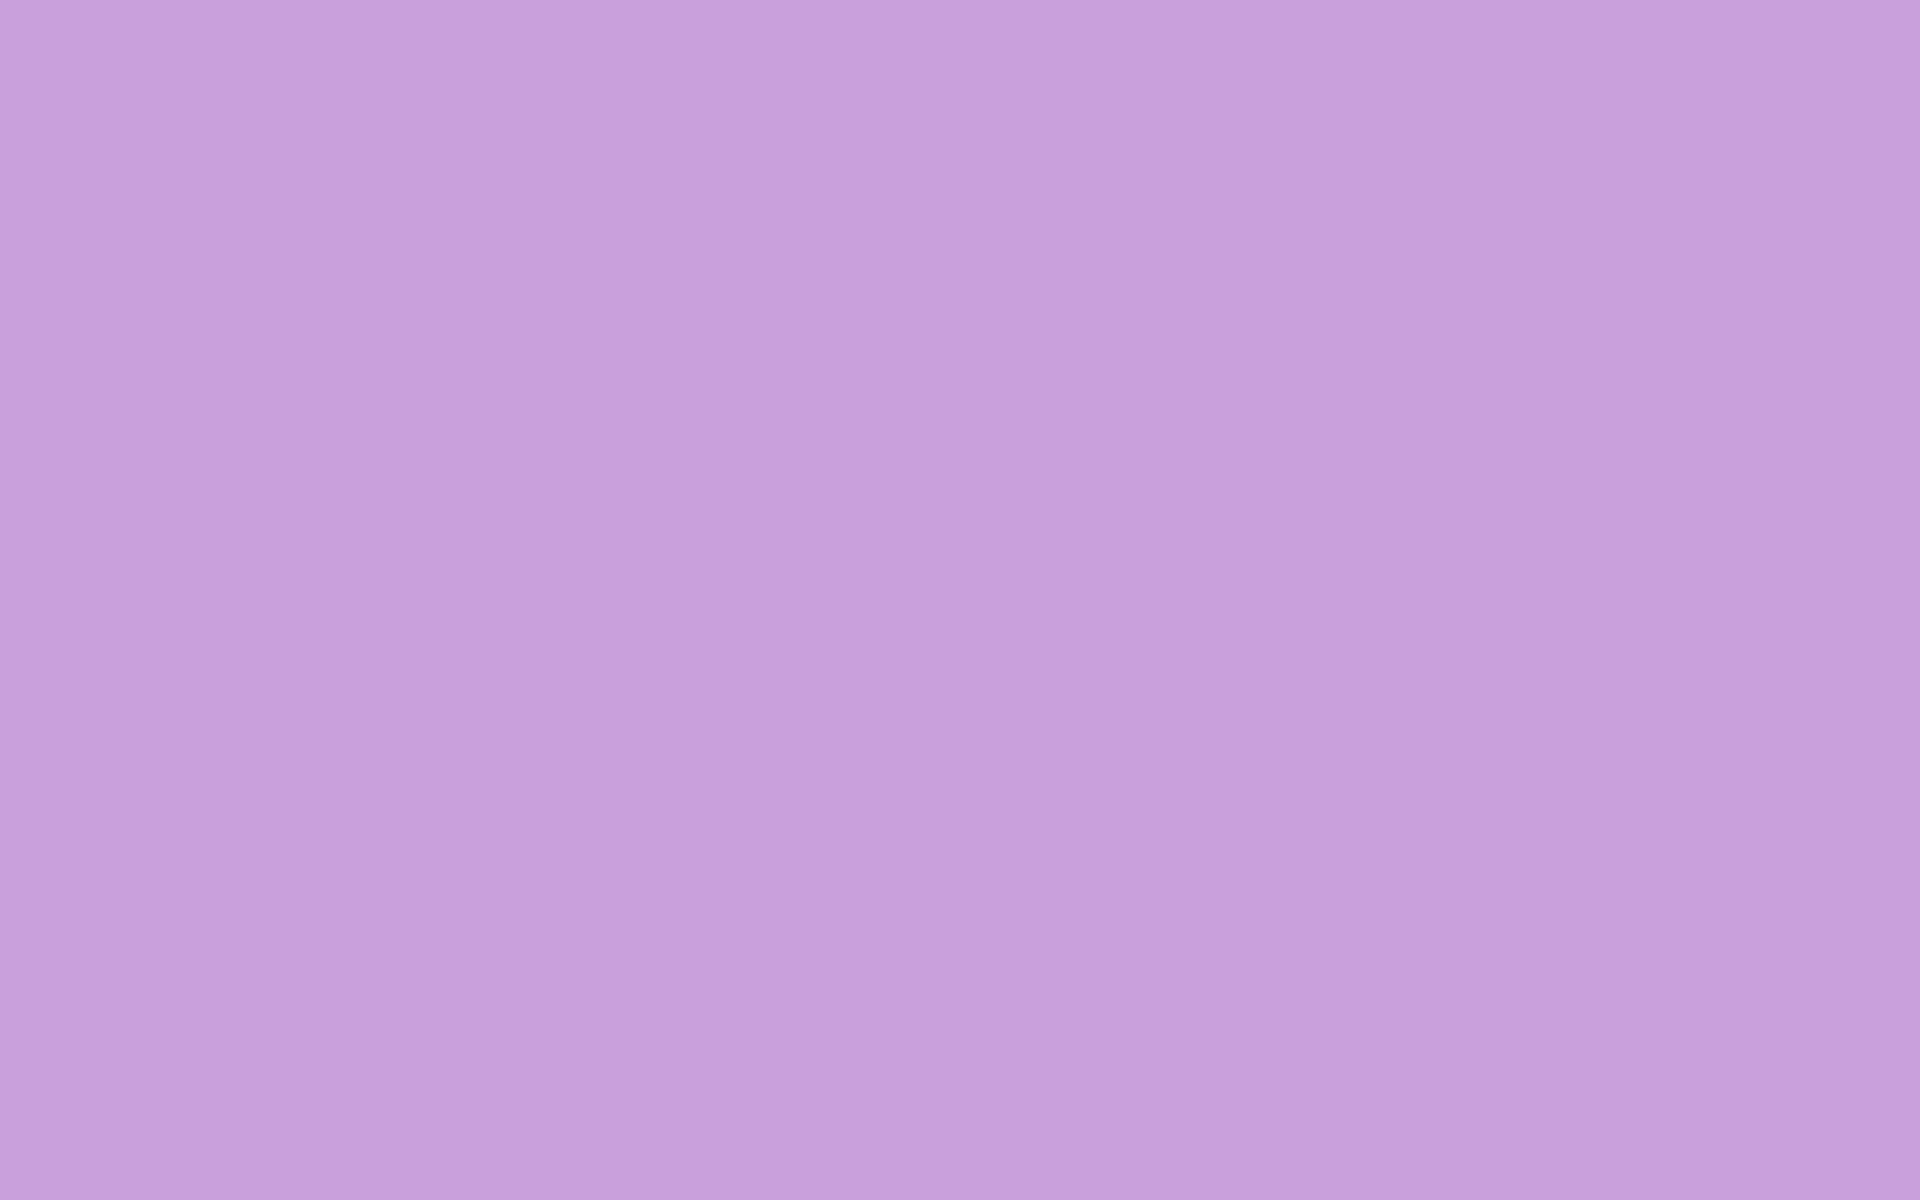 1920x1200 Wisteria Solid Color Background